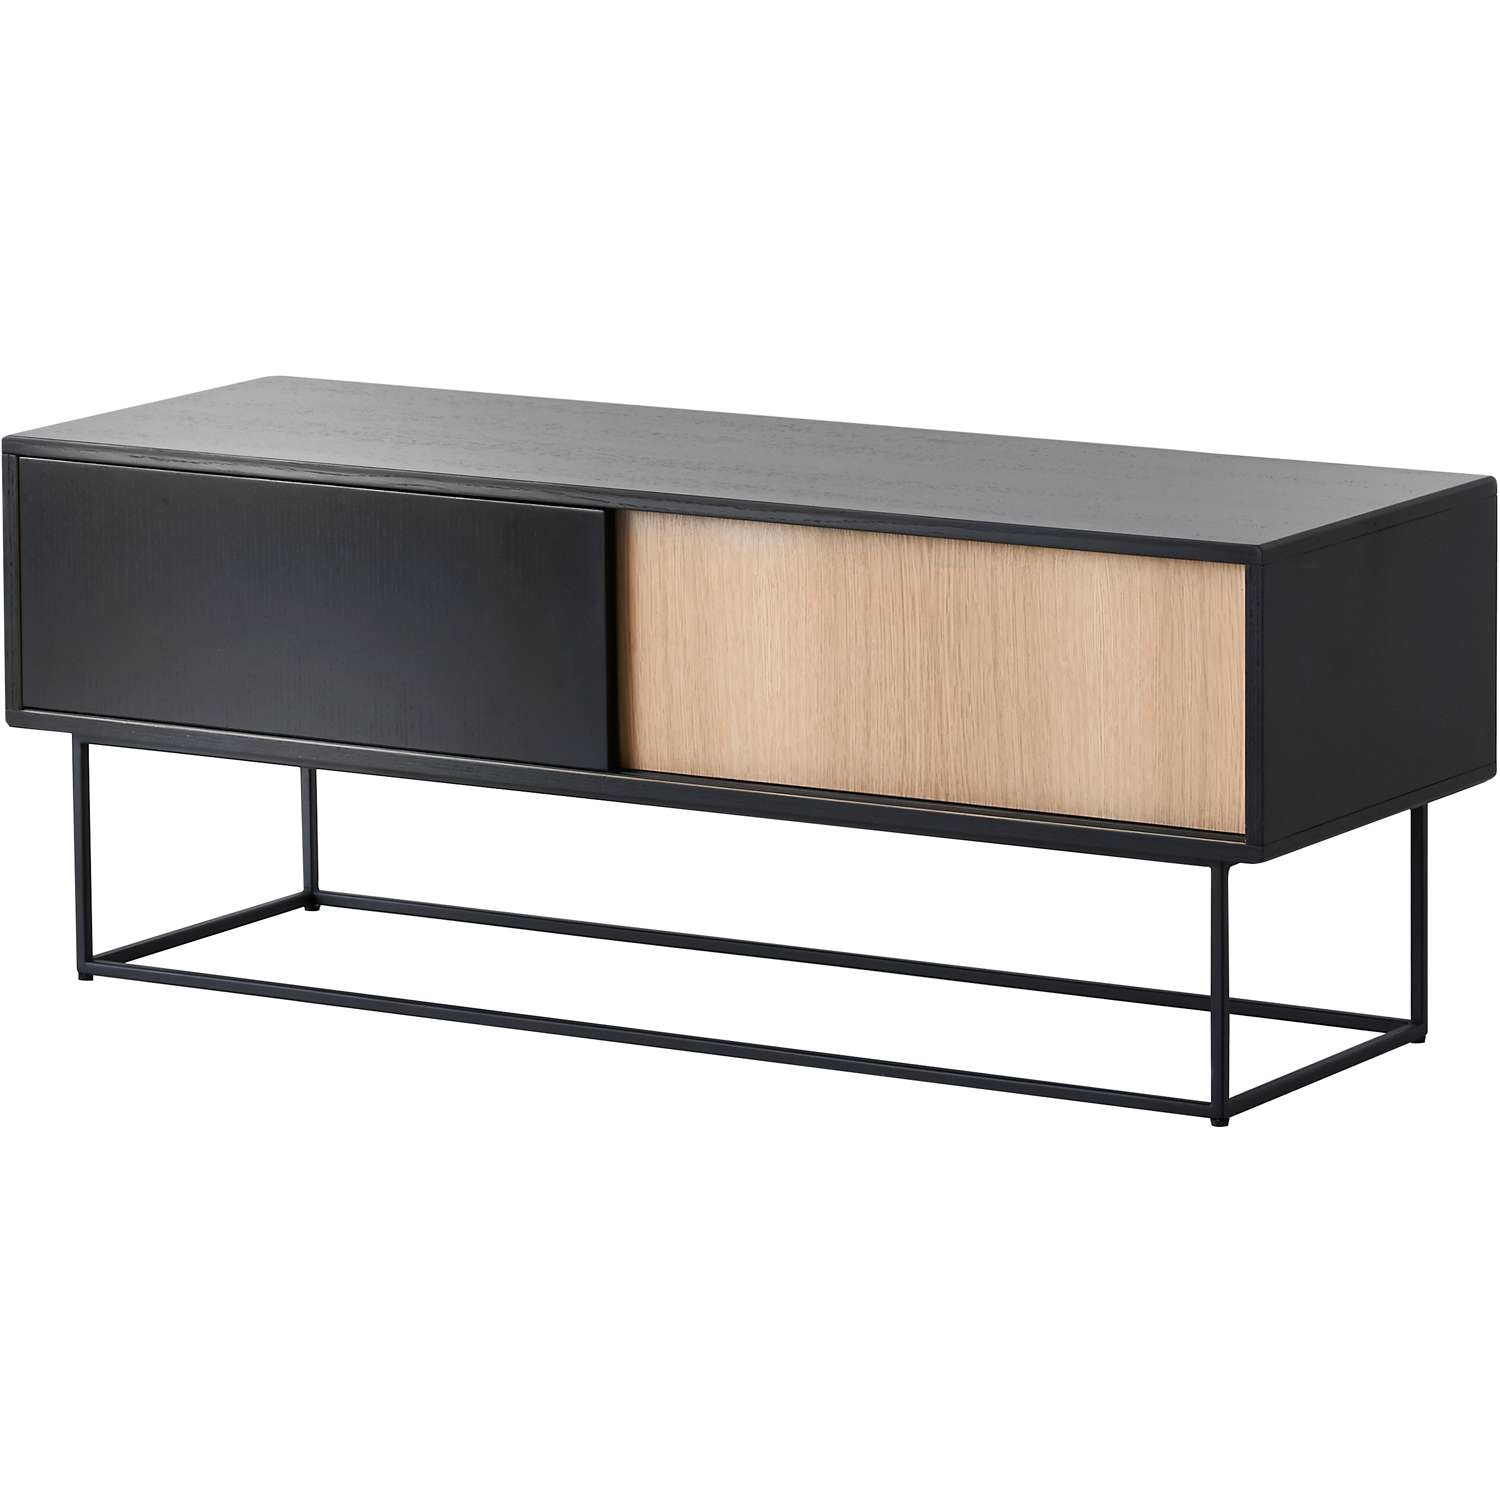 Virka Sideboard – Low | Woud | Horne Pertaining To Low Sideboards (View 20 of 20)